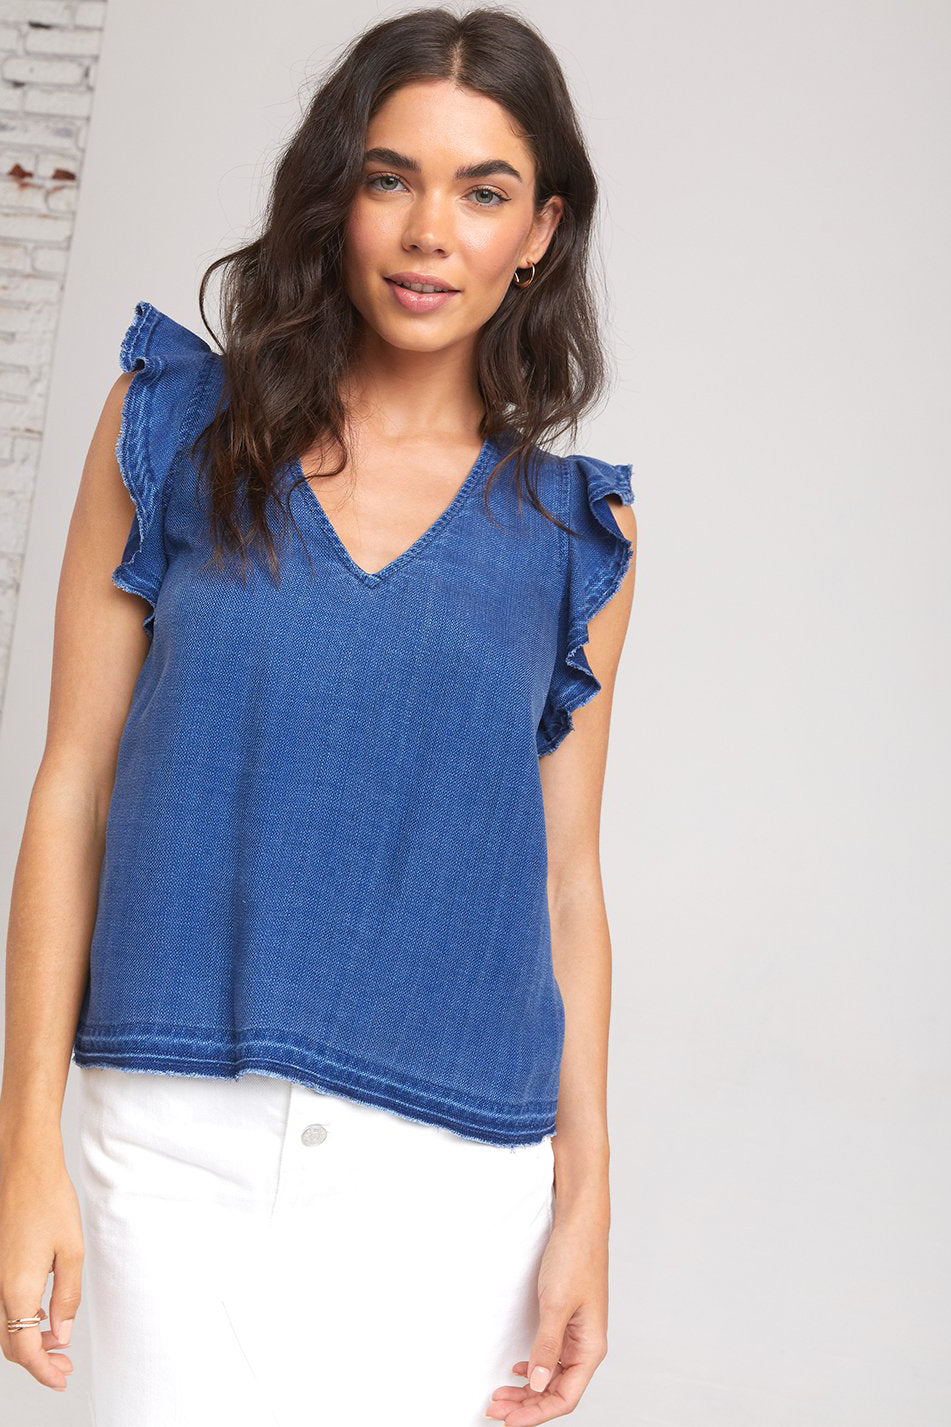 BELLA DAHL - Released Ruffle V-Neck Top online at PAYA boutique